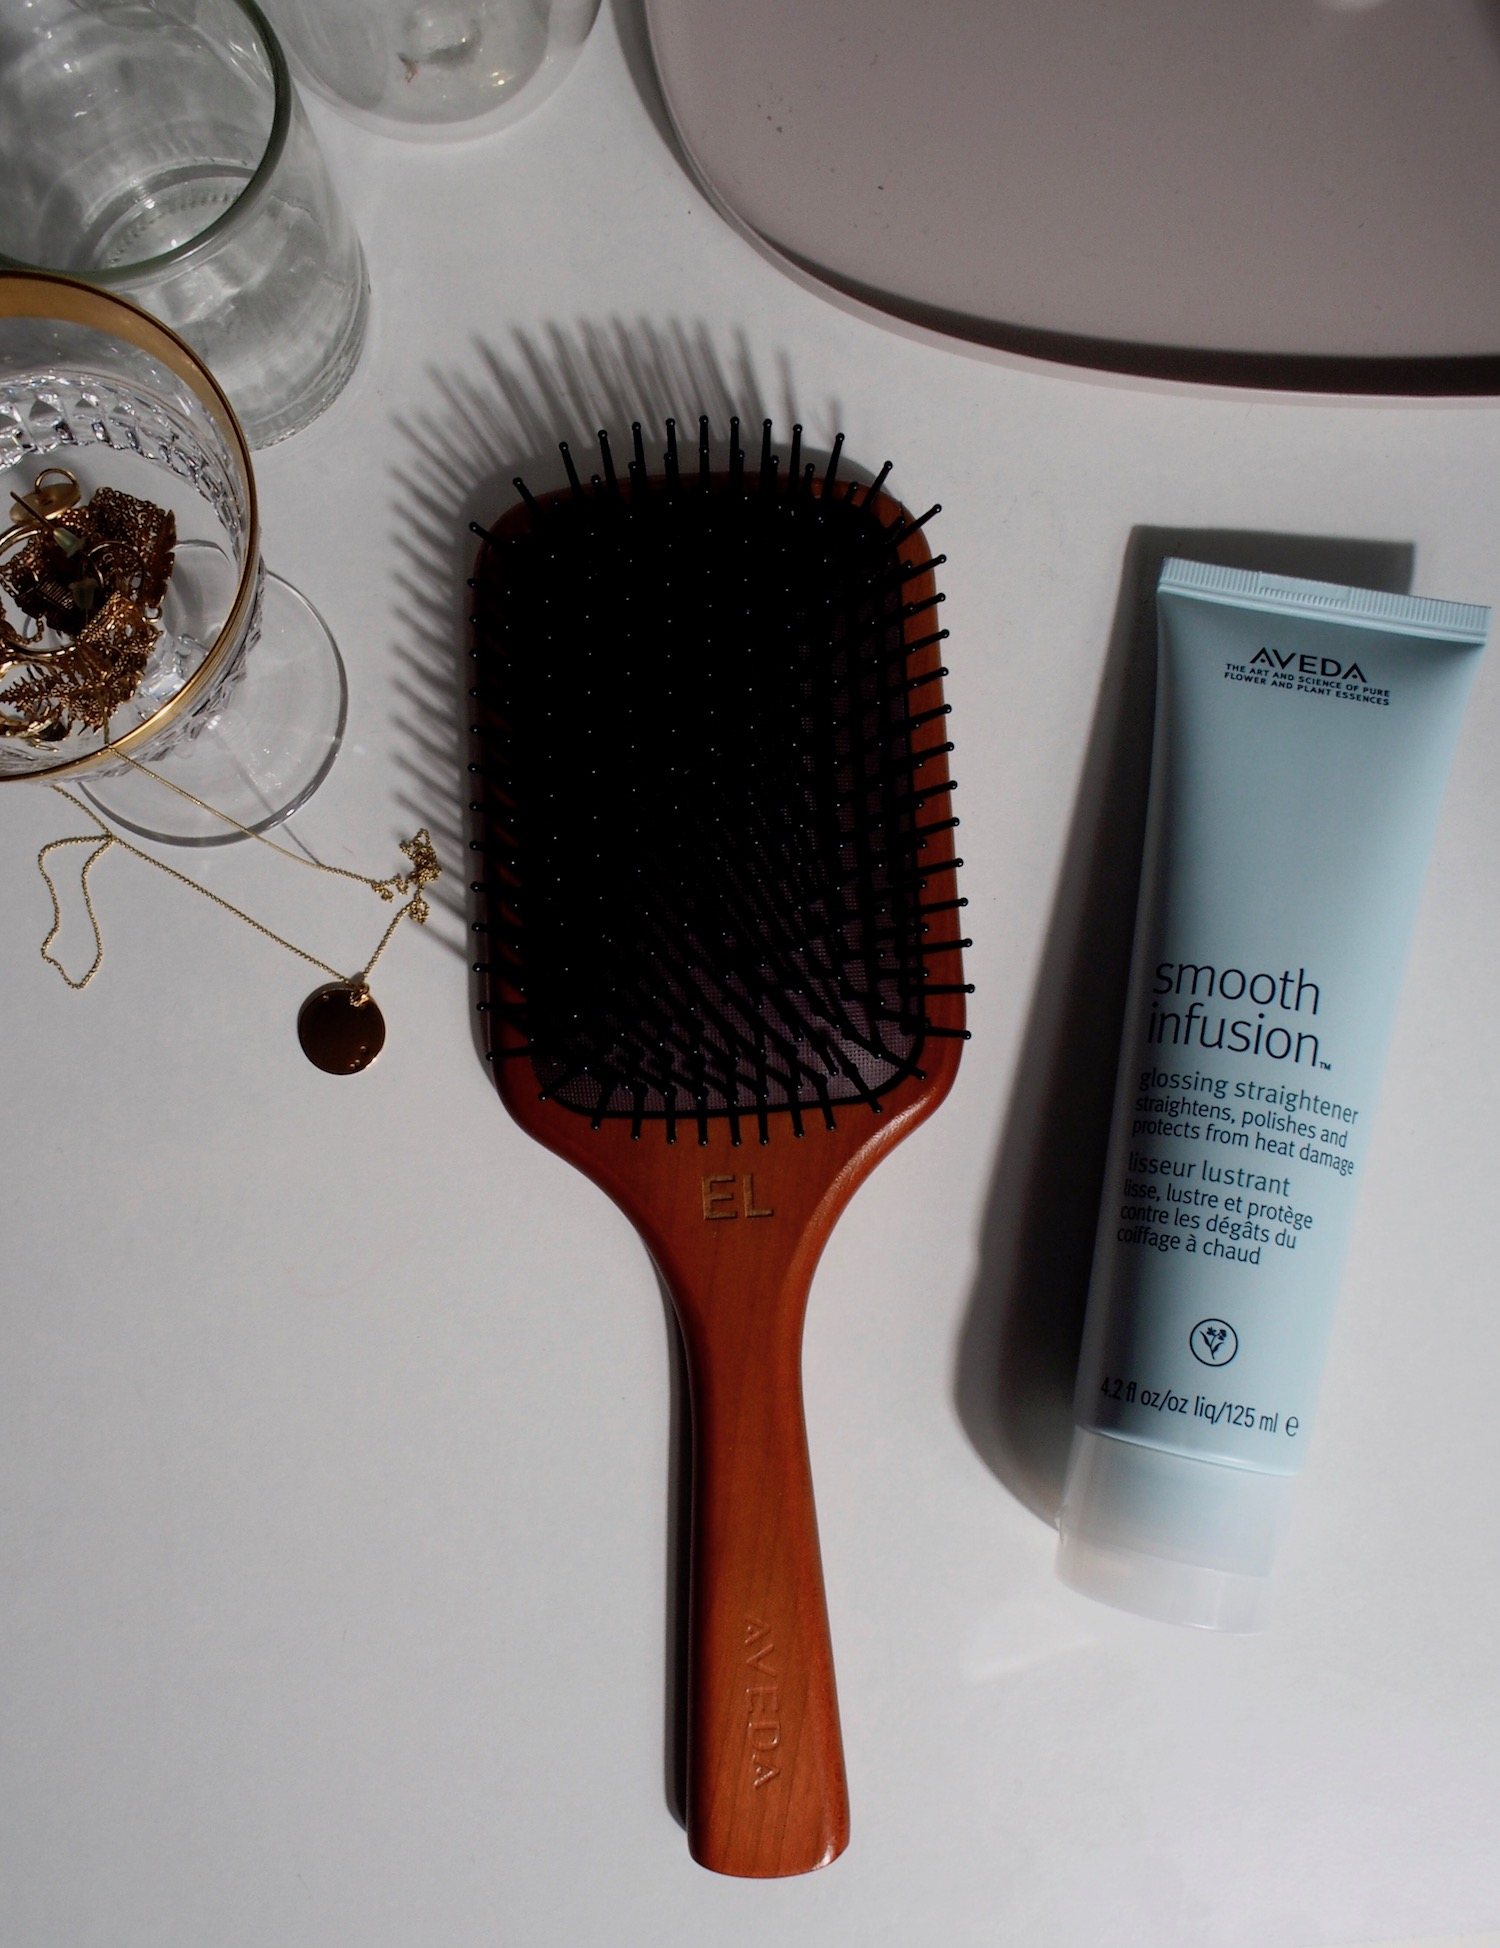 Beautyblog Beautyblogger BARE MINDS Elina Neumann Aveda smooth infusion glossing straightener